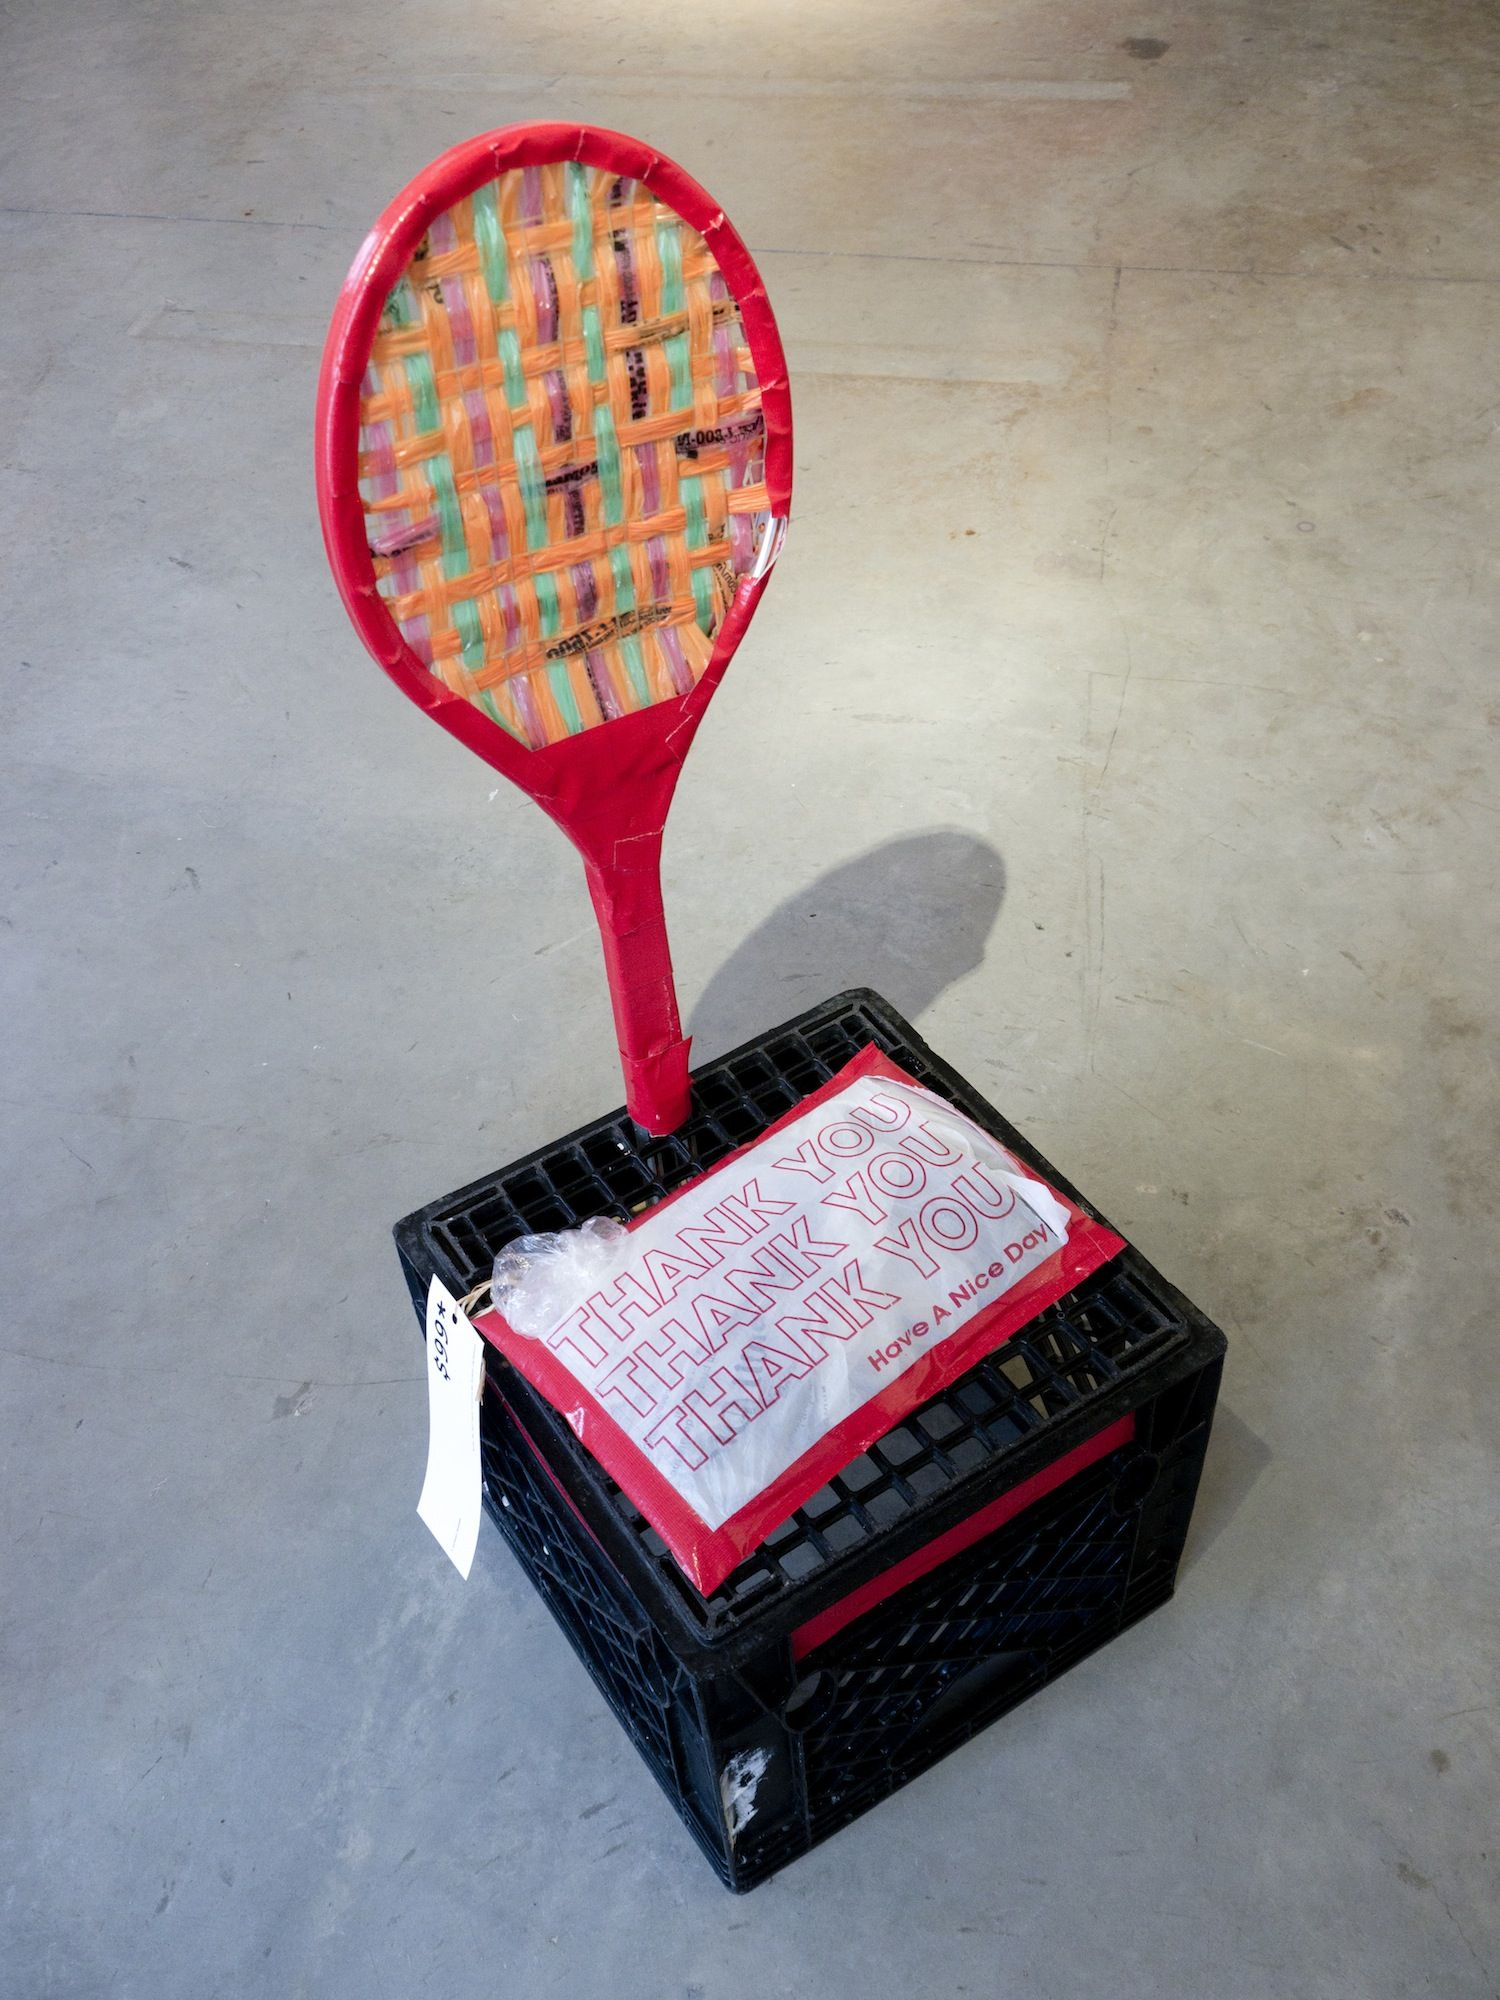 The Chair People Collective 12 Break Point Milk Crate Salvaged Aluminium Tennis Racquet Woven Plastic Bags Tape Bag Cushion